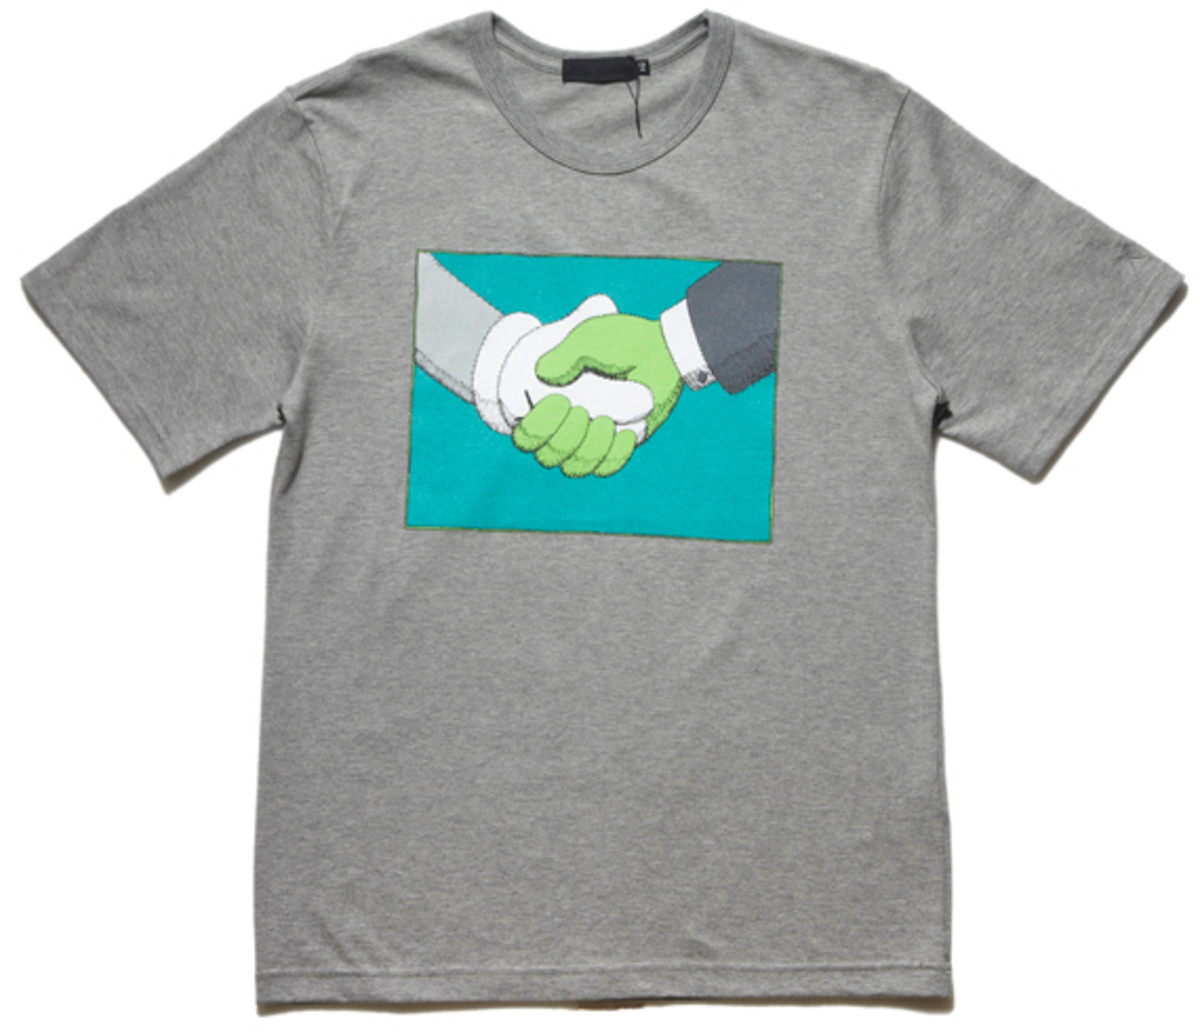 original-fake-better-wash-your-hand-tee-04